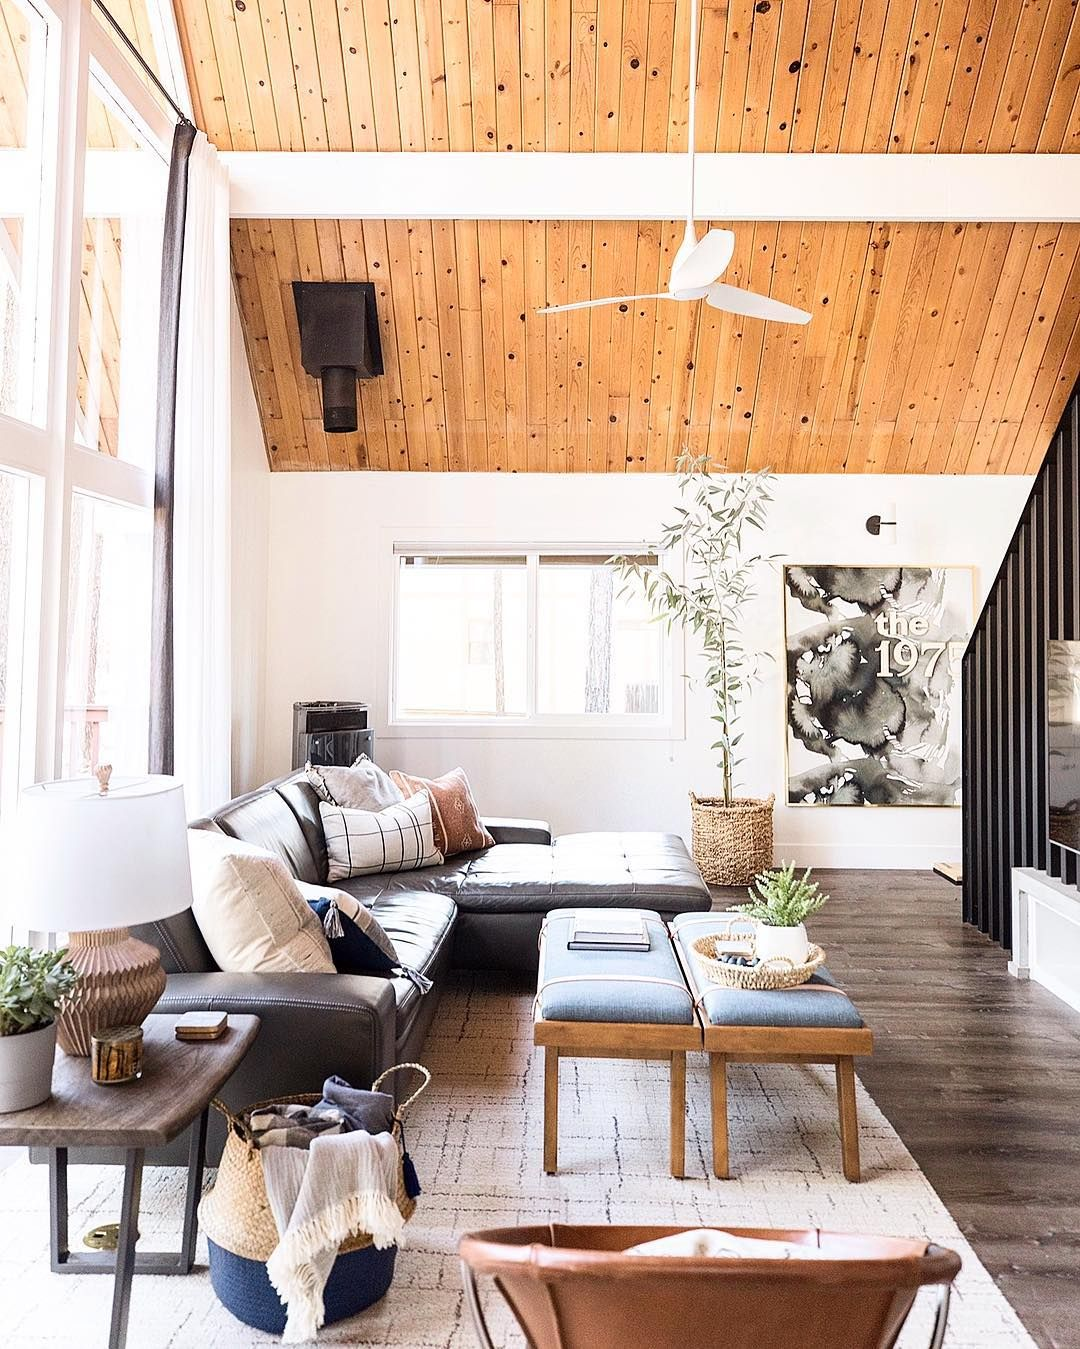 Remember That Room You Ve Been Meaning To Redesign Here S Some Inspo By Getawayframe Using Carry A Torch In Crea Living Room Hacks Great Rooms Rooms Reveal In living room meaning